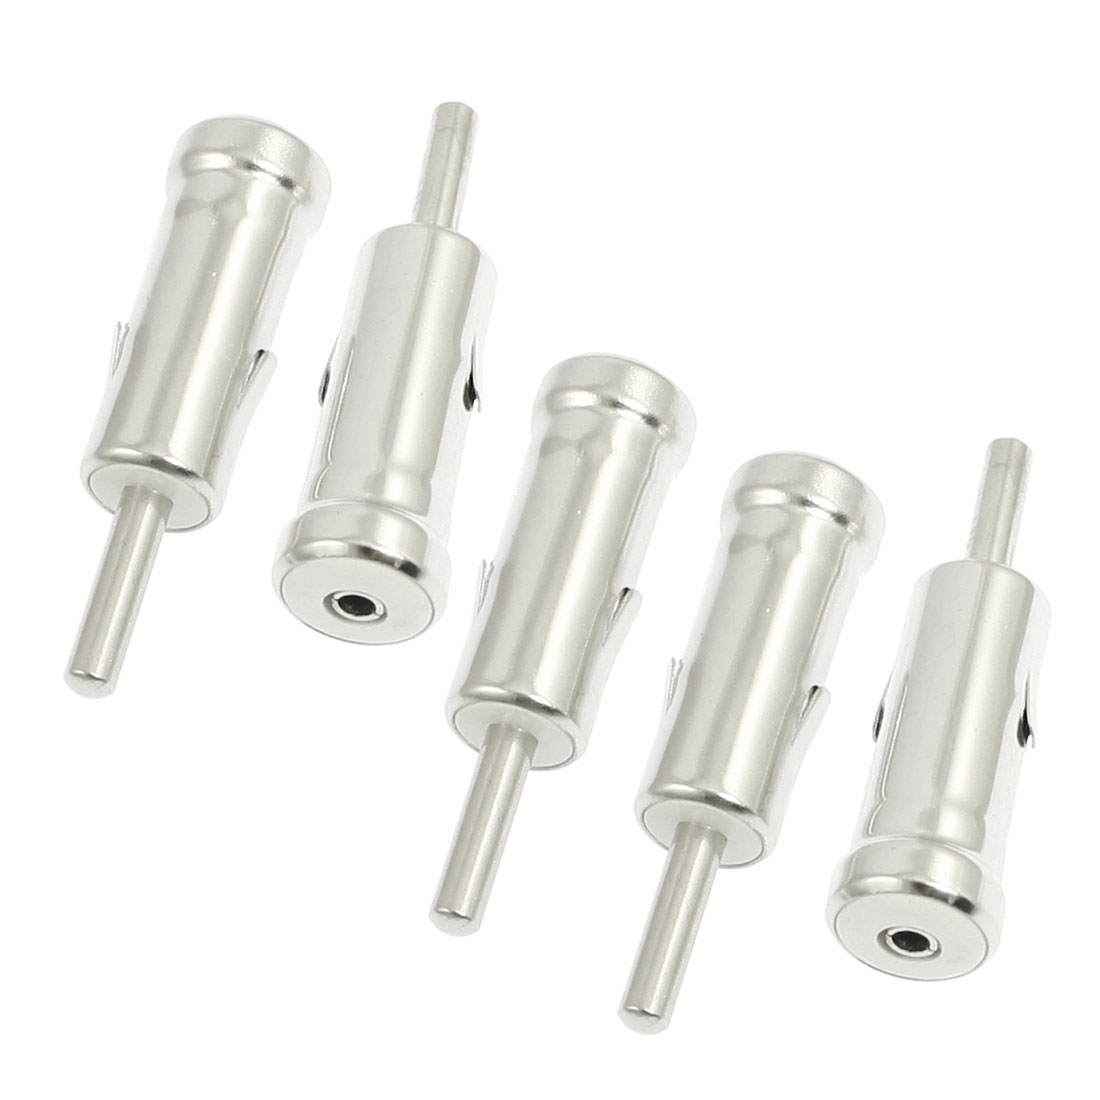 5 Pcs Vehicle Car Male AM/FM Radio Stereo Adapter Connectors